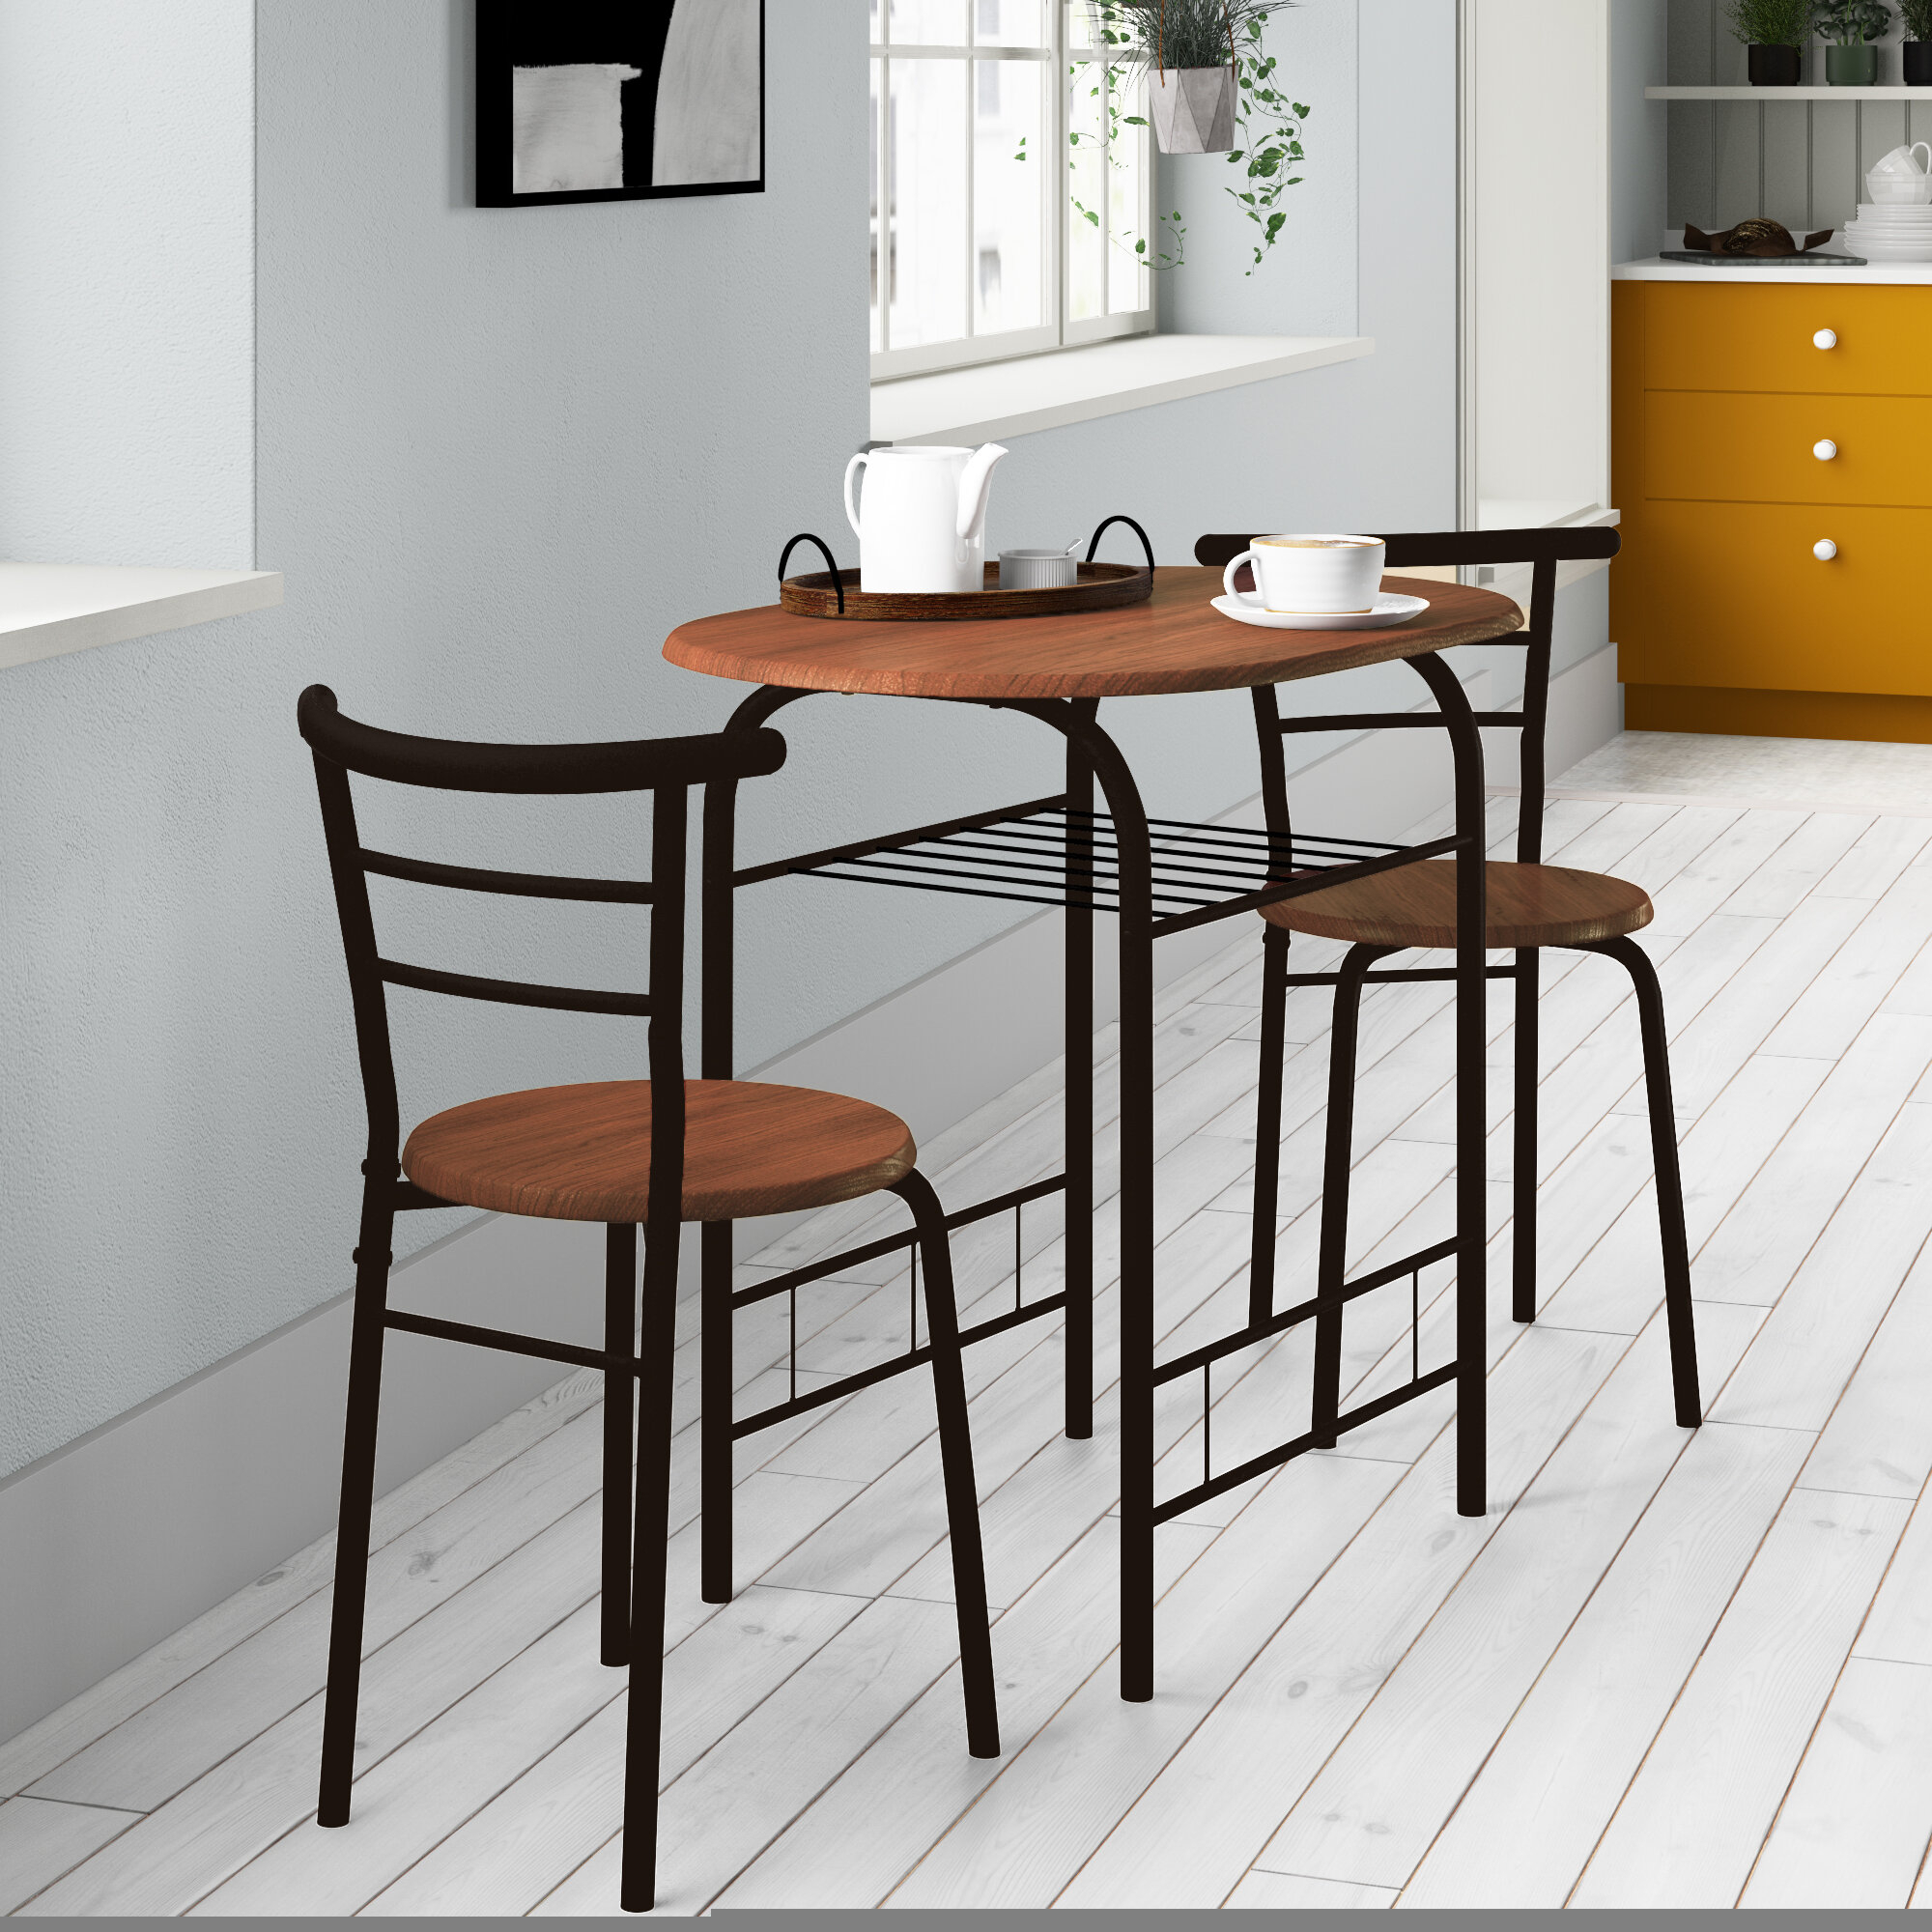 Volmer 3 Piece Compact Dining Set Regarding Most Recent Kinsler 3 Piece Bistro Sets (View 3 of 20)